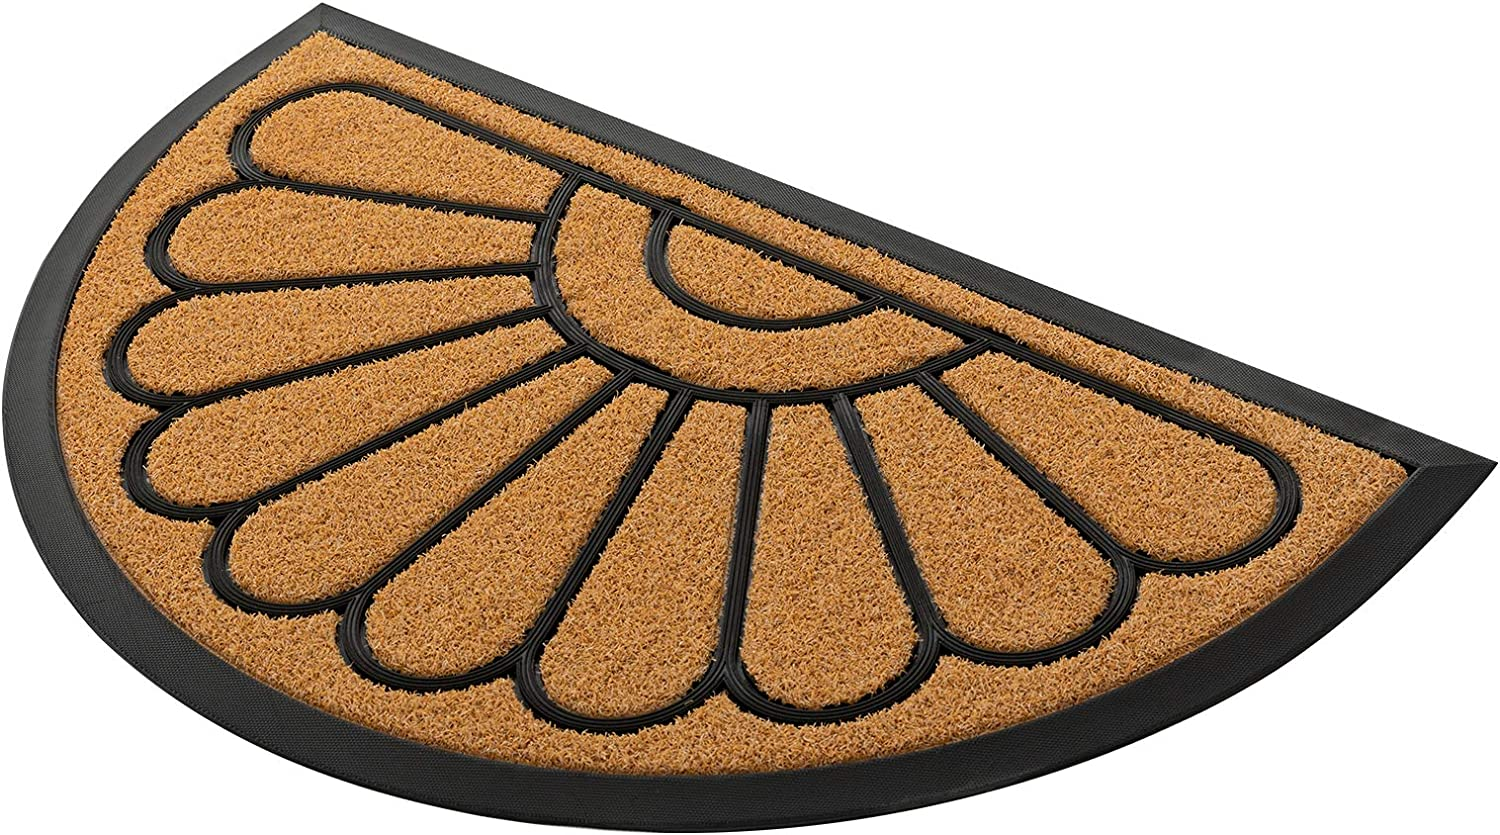 Rubber Door Mat, Half Round Outdoor Doormat by PILITO, Heavy Duty Welcome Mats, Non-Slip Entrance Mat for Patio, Entry, Home, Easy-to-Clean & Capture Dirt (18